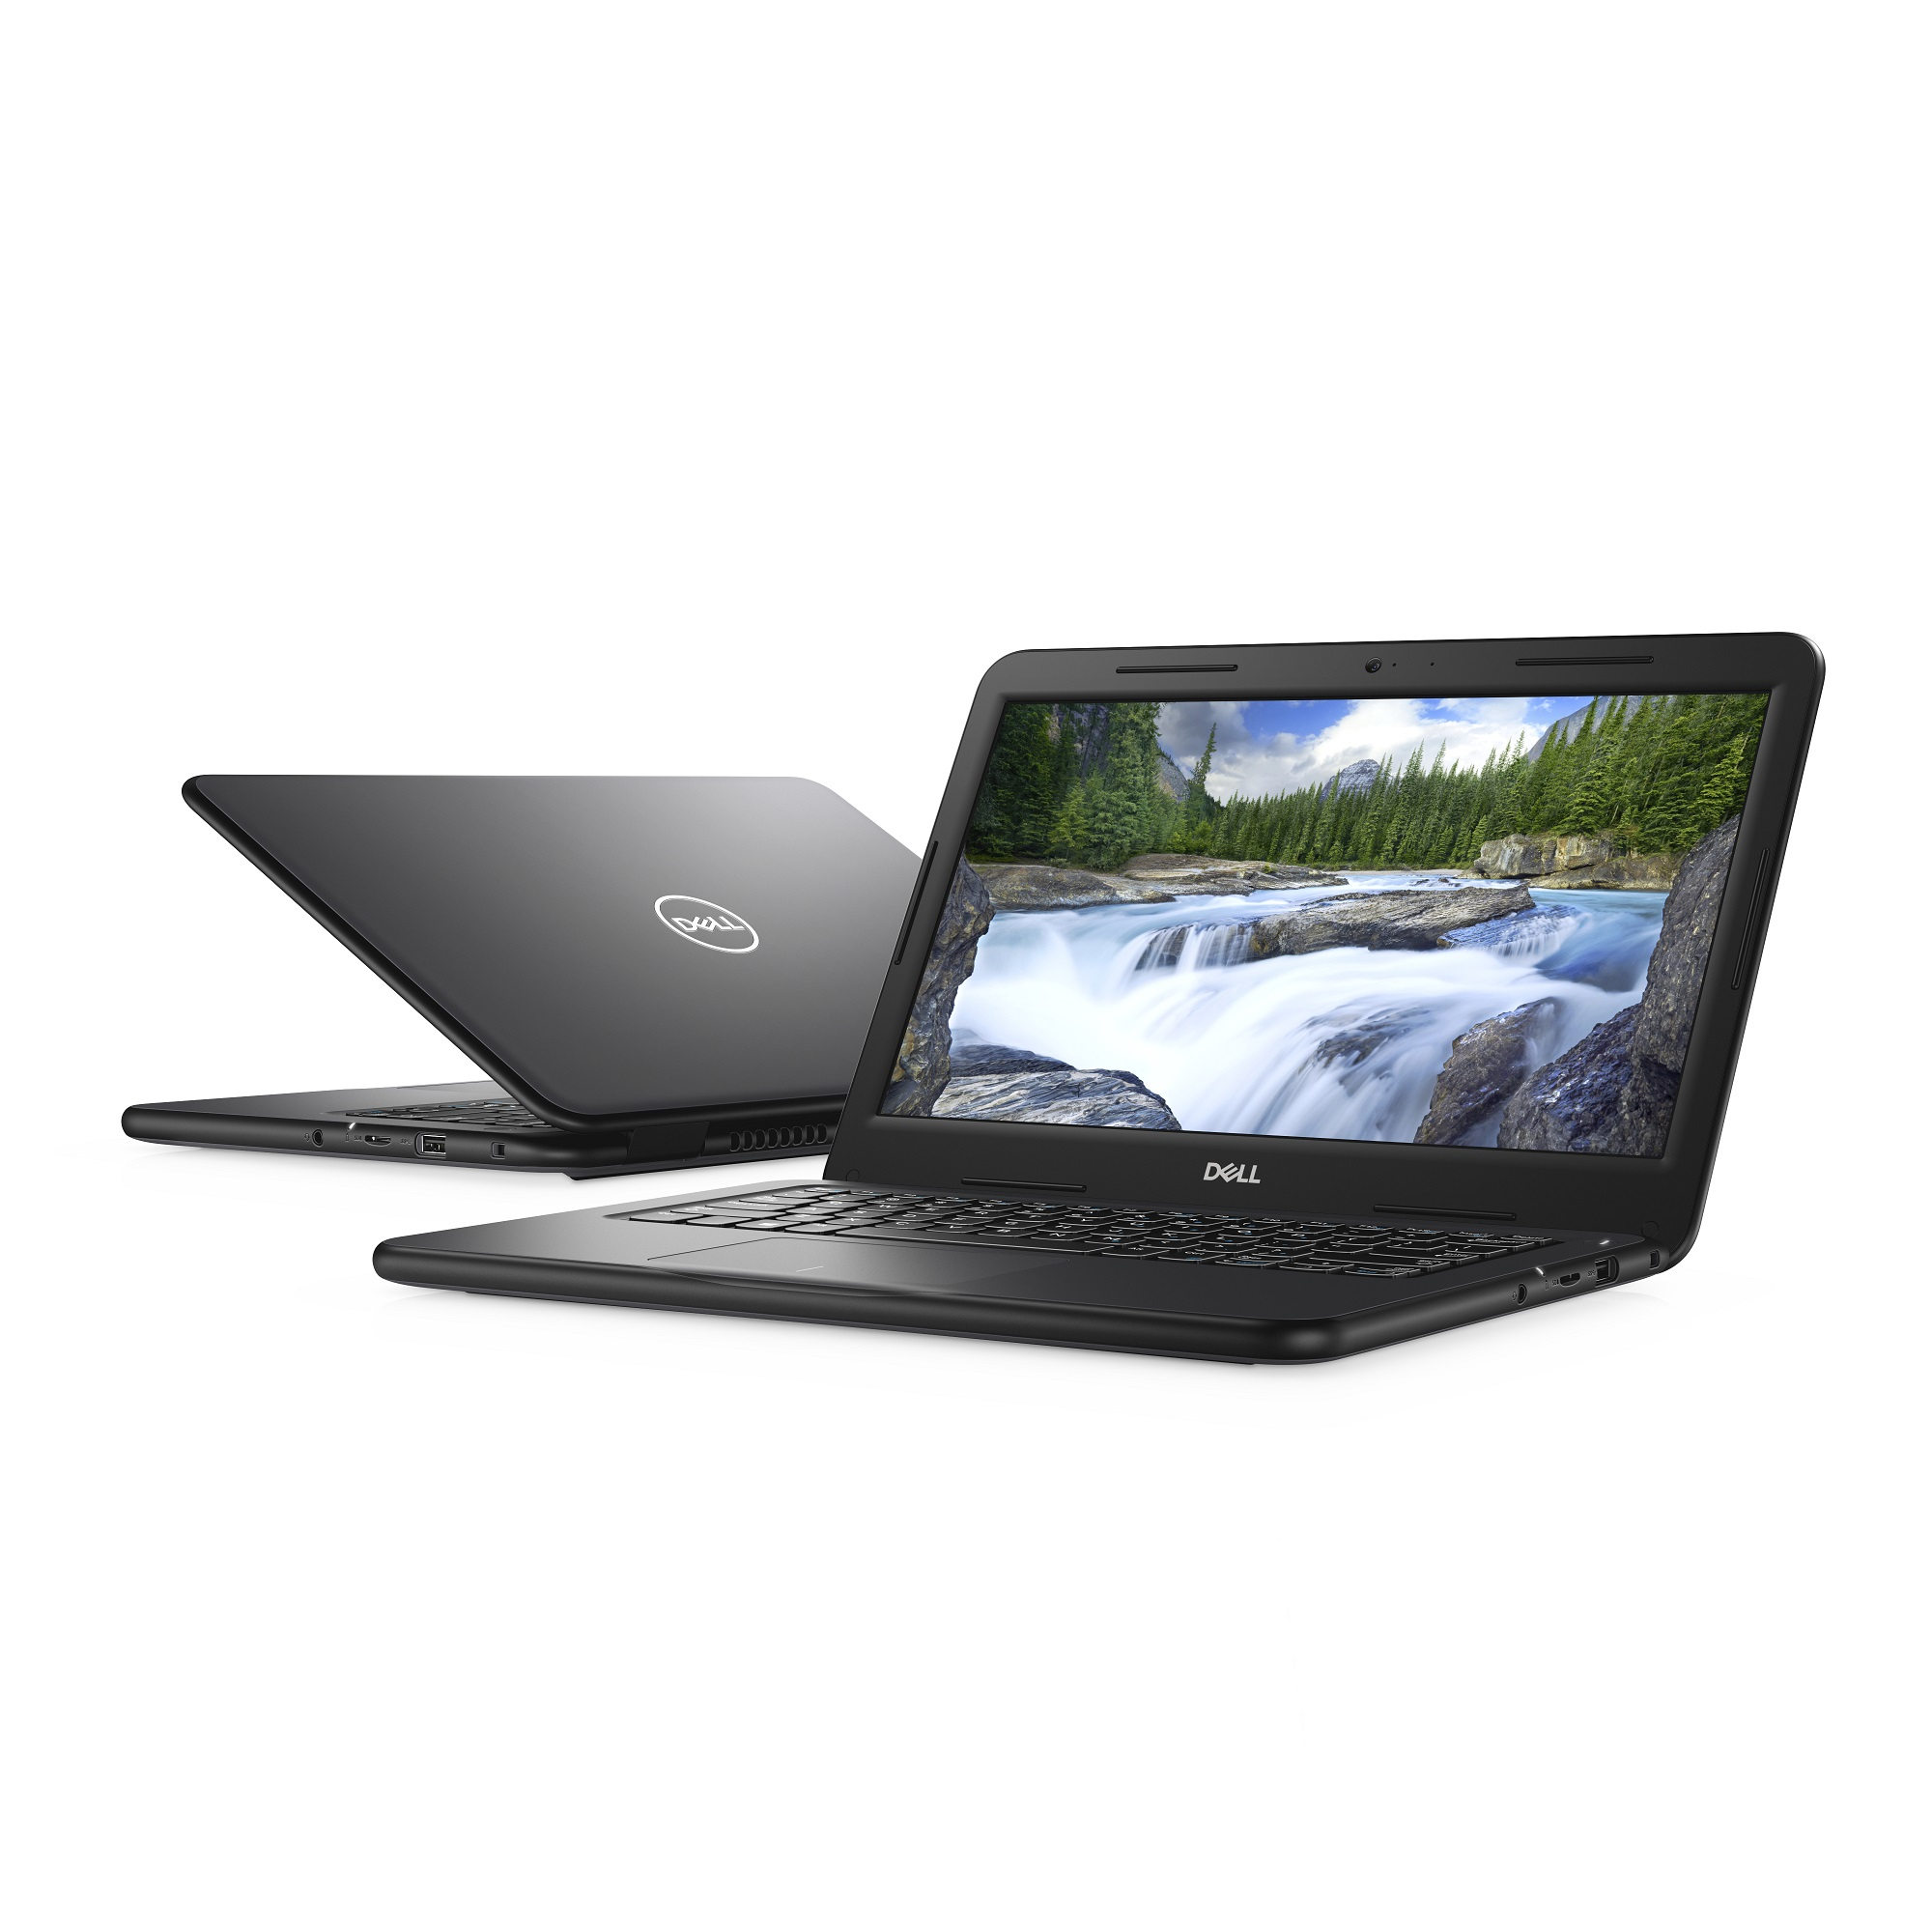 Laptop DELL Latitude 3310 13,3 HD i3-8145U 4GB 256GB SSD W10P 3YBWOS